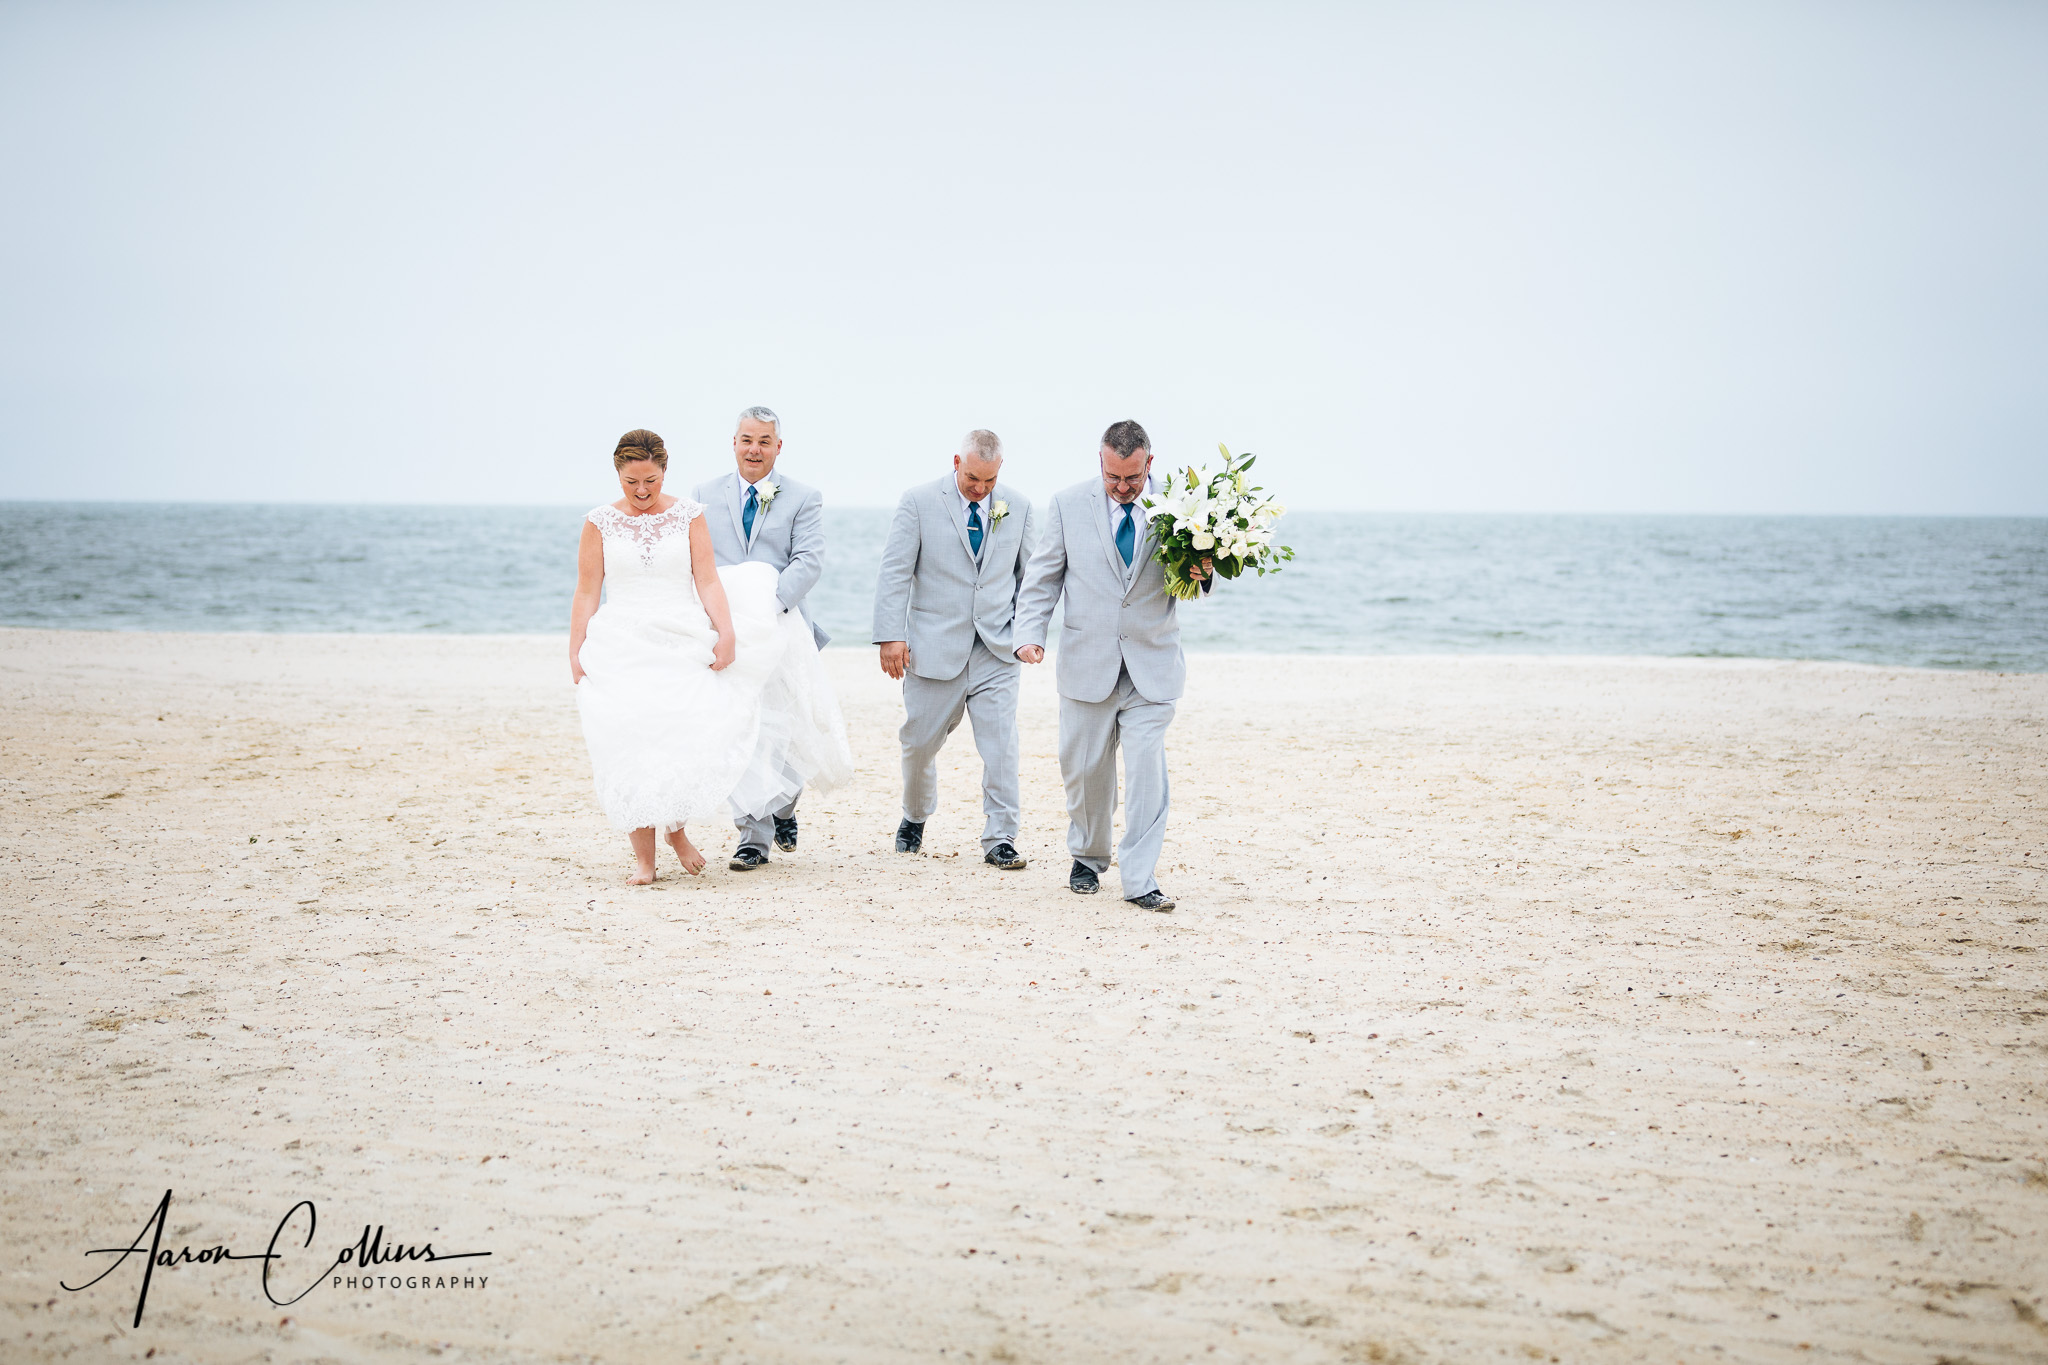 Groomsmen helping the bride keep the sand off her dress on the beach.